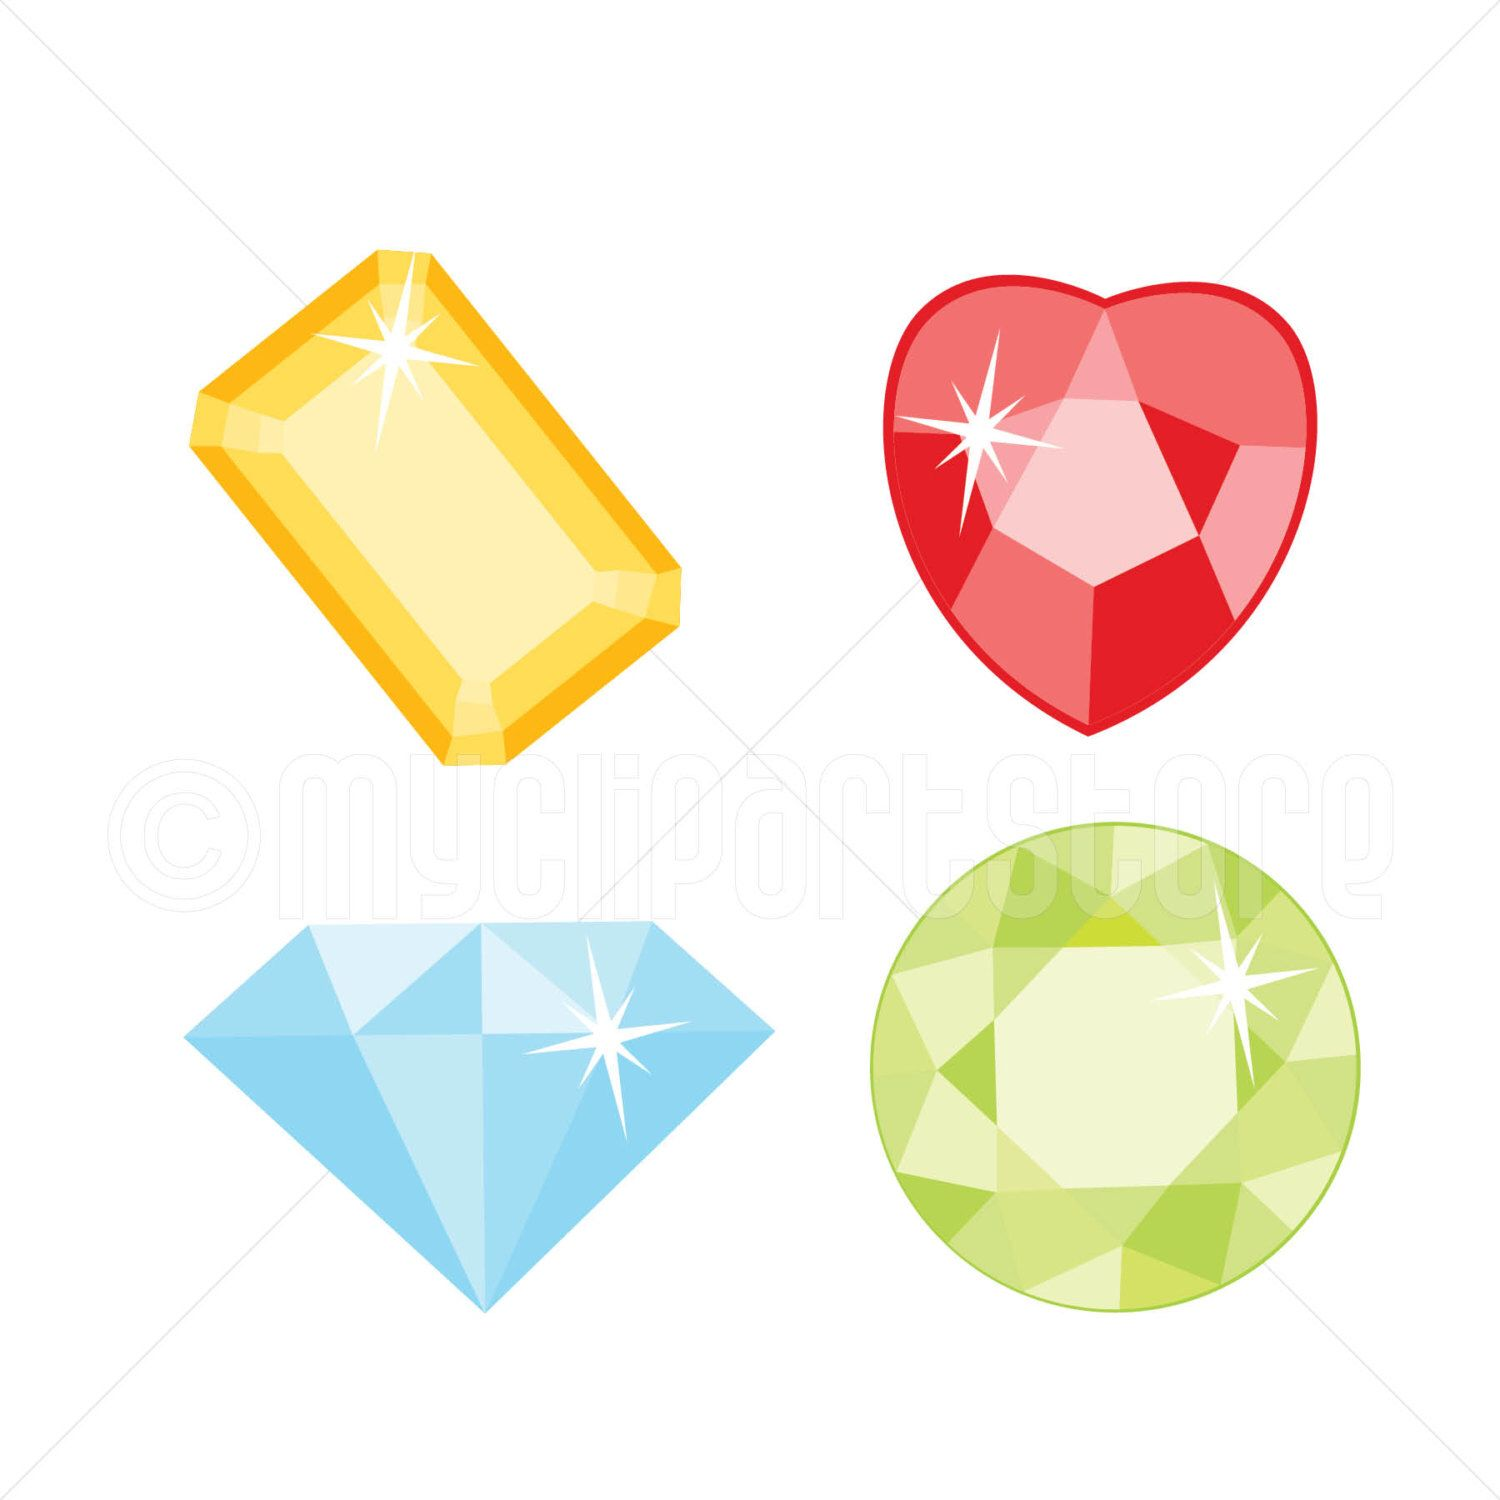 Jewel clipart. Gems and jewels gemstones